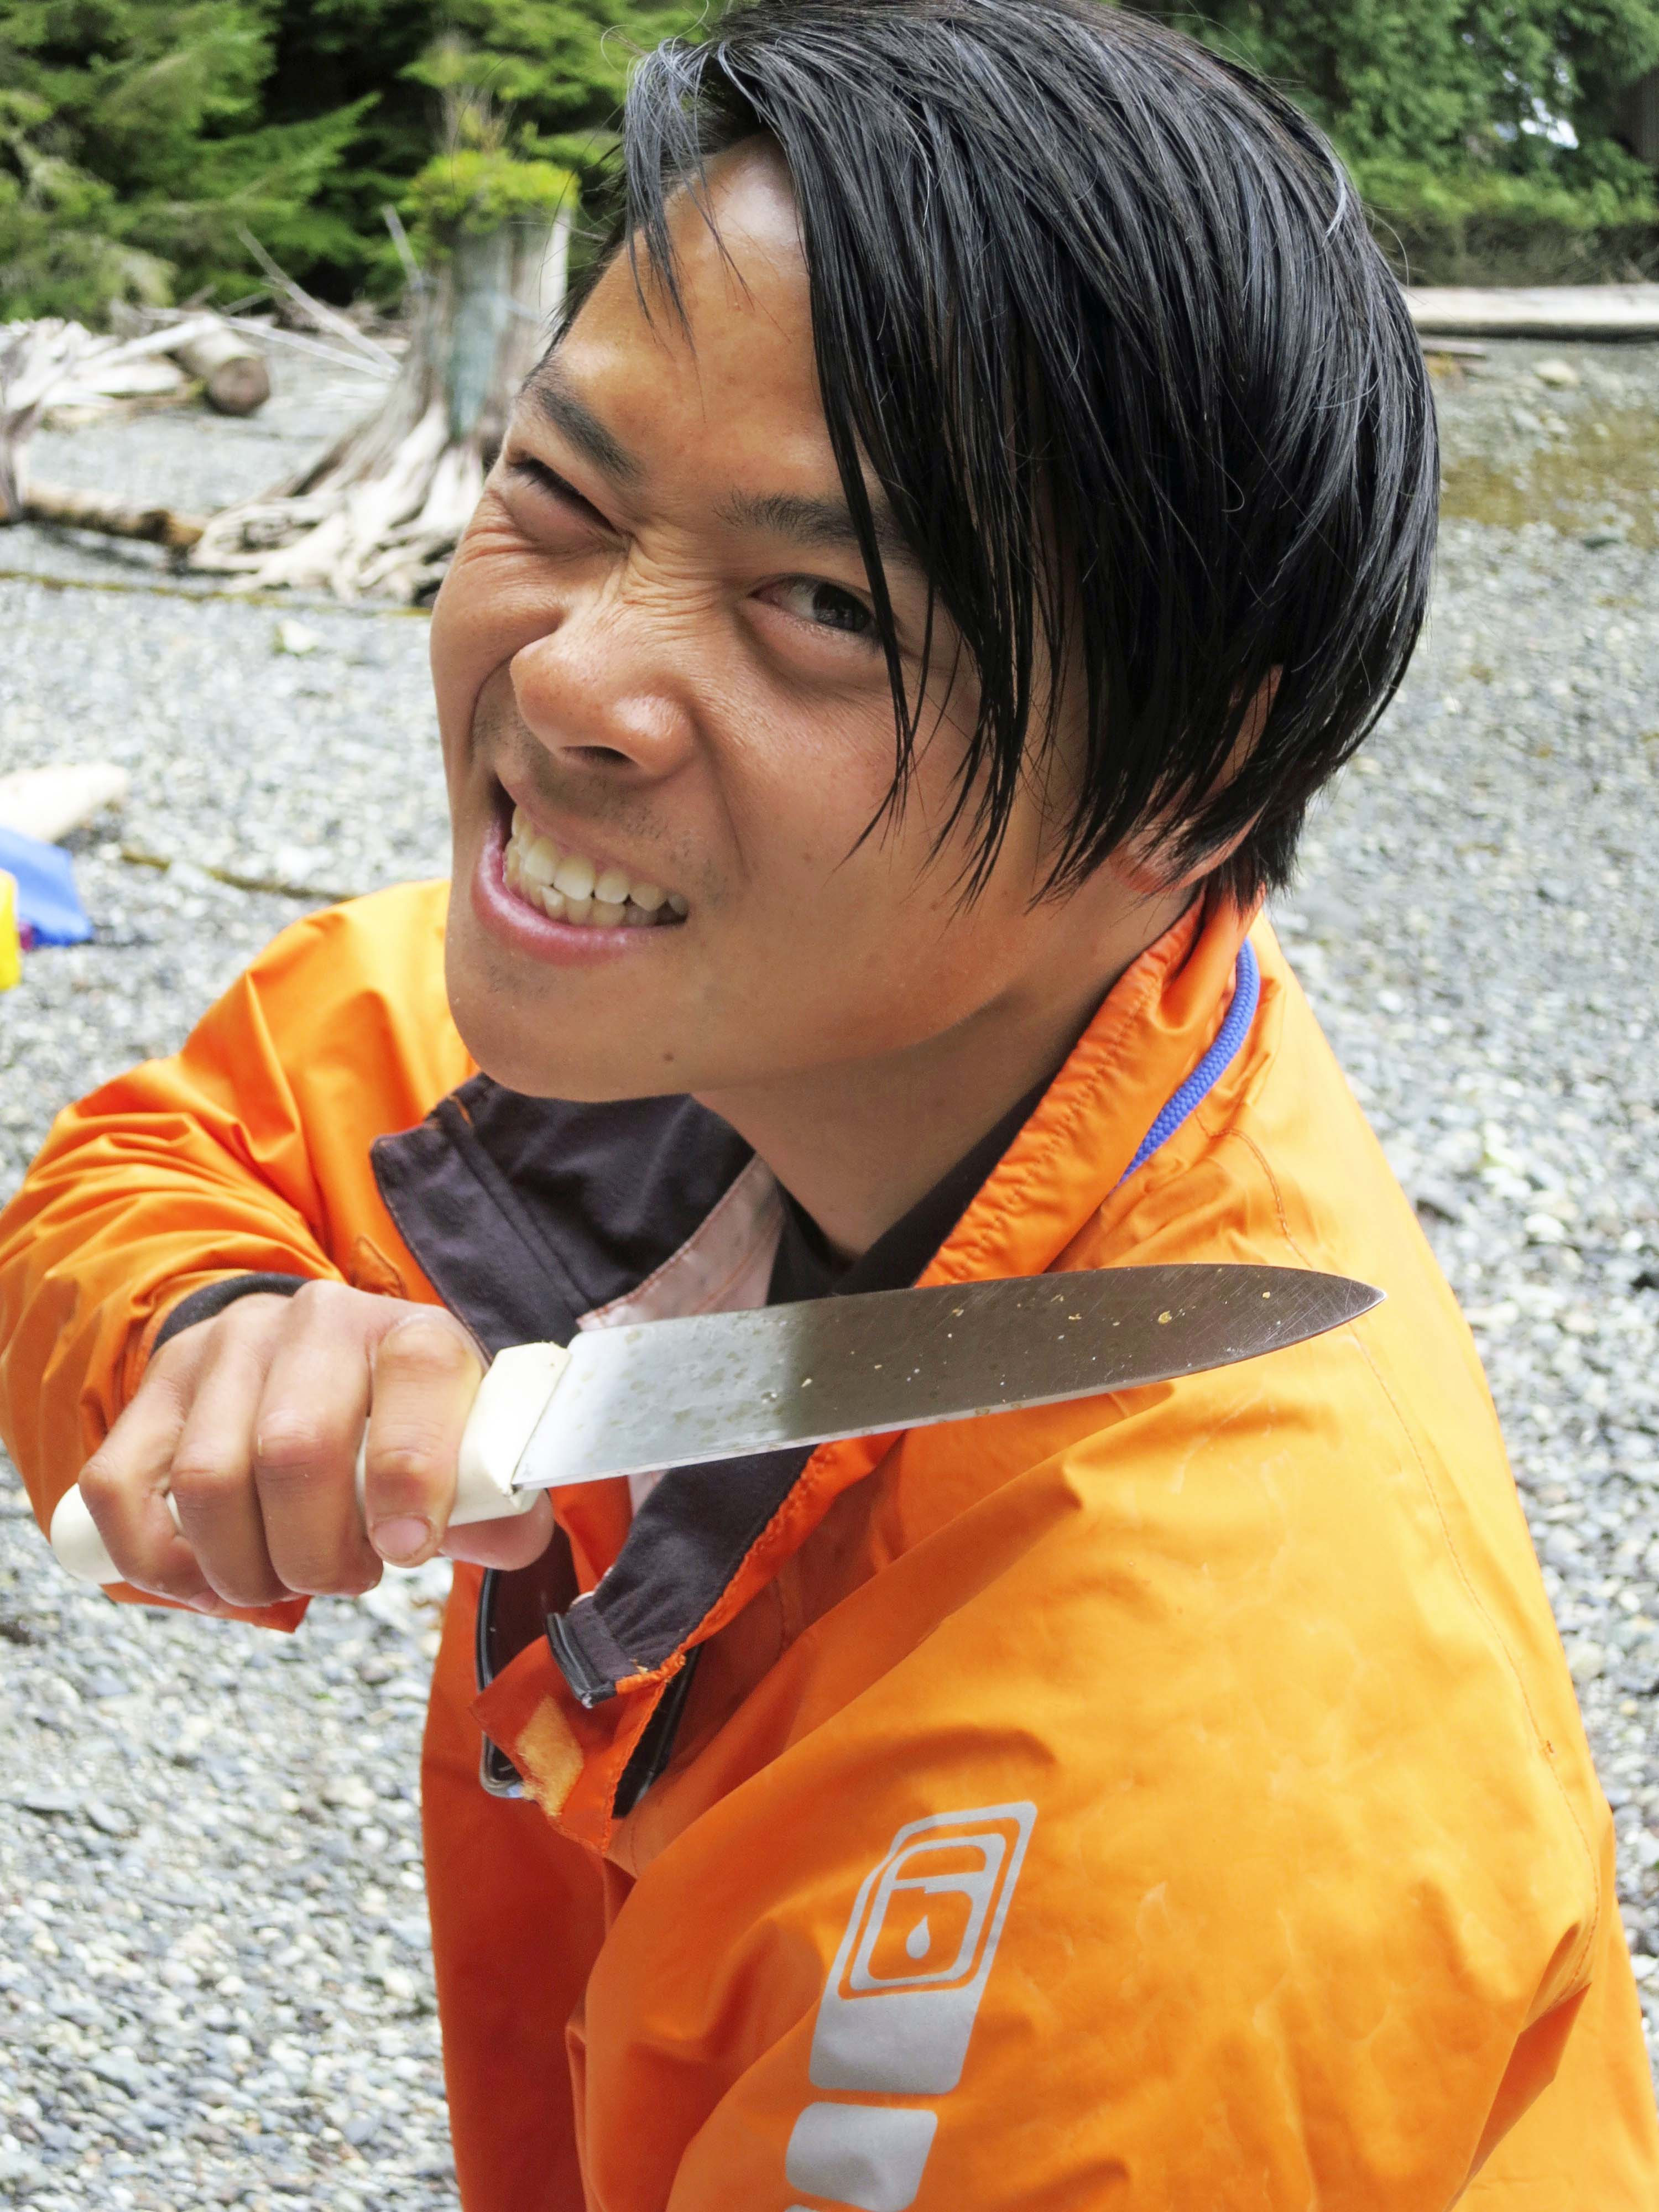 Quy, another of our guides, is a gentle soul who in his other life works as a computer geek in Vancouver. So what is he doing with this knife?